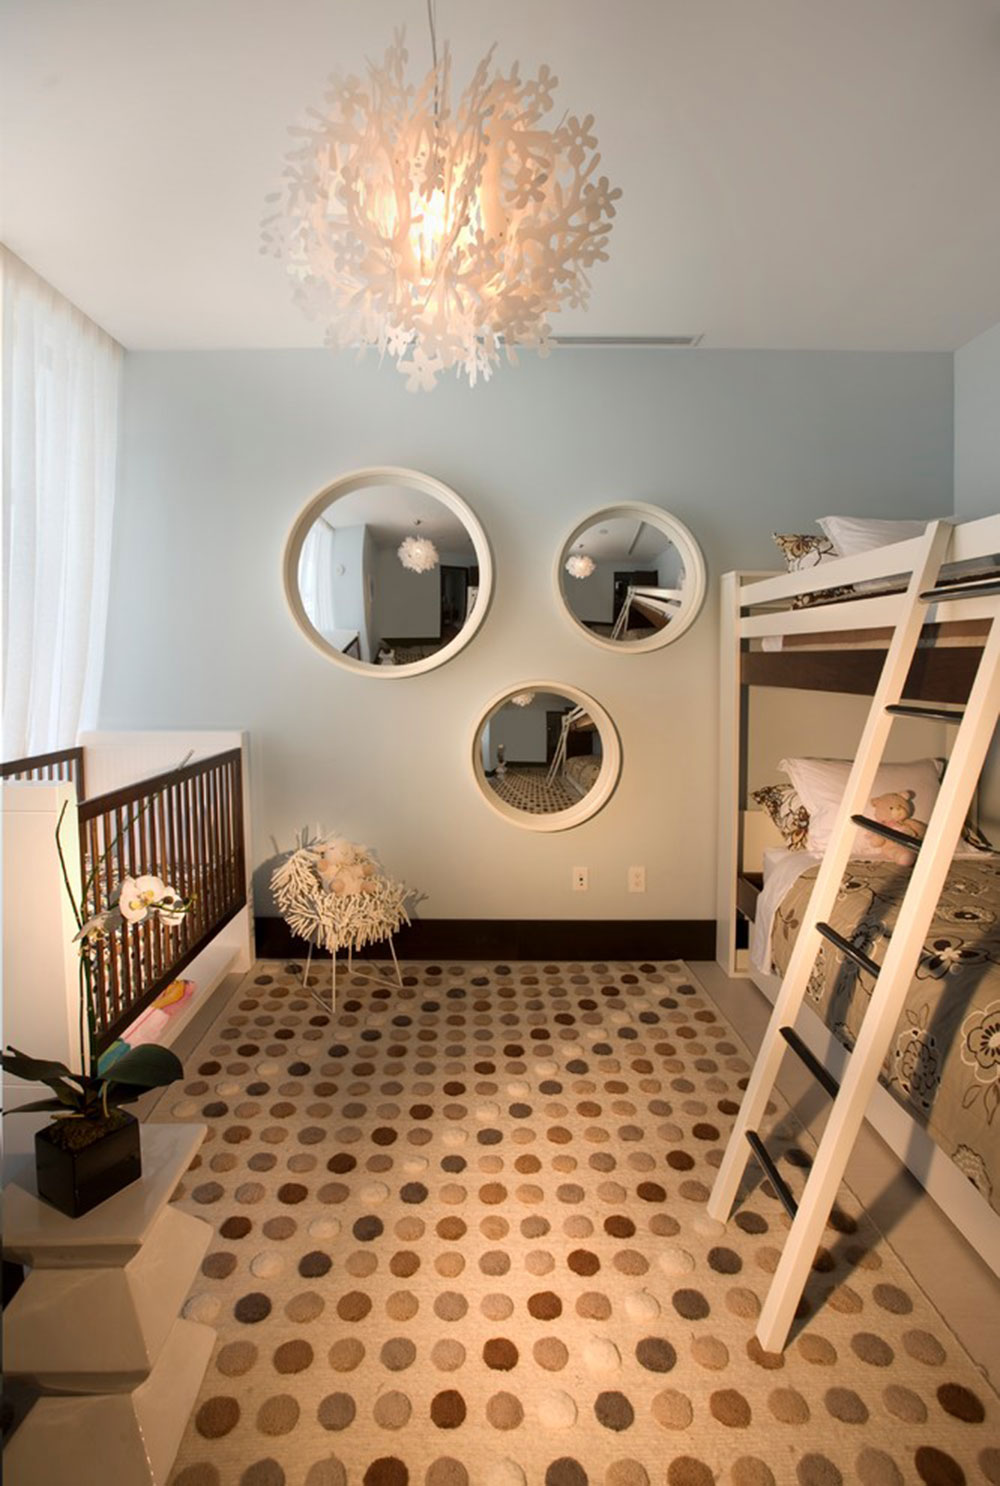 Decorating to create a focus should be natural5 Decorating to create a focus should be natural